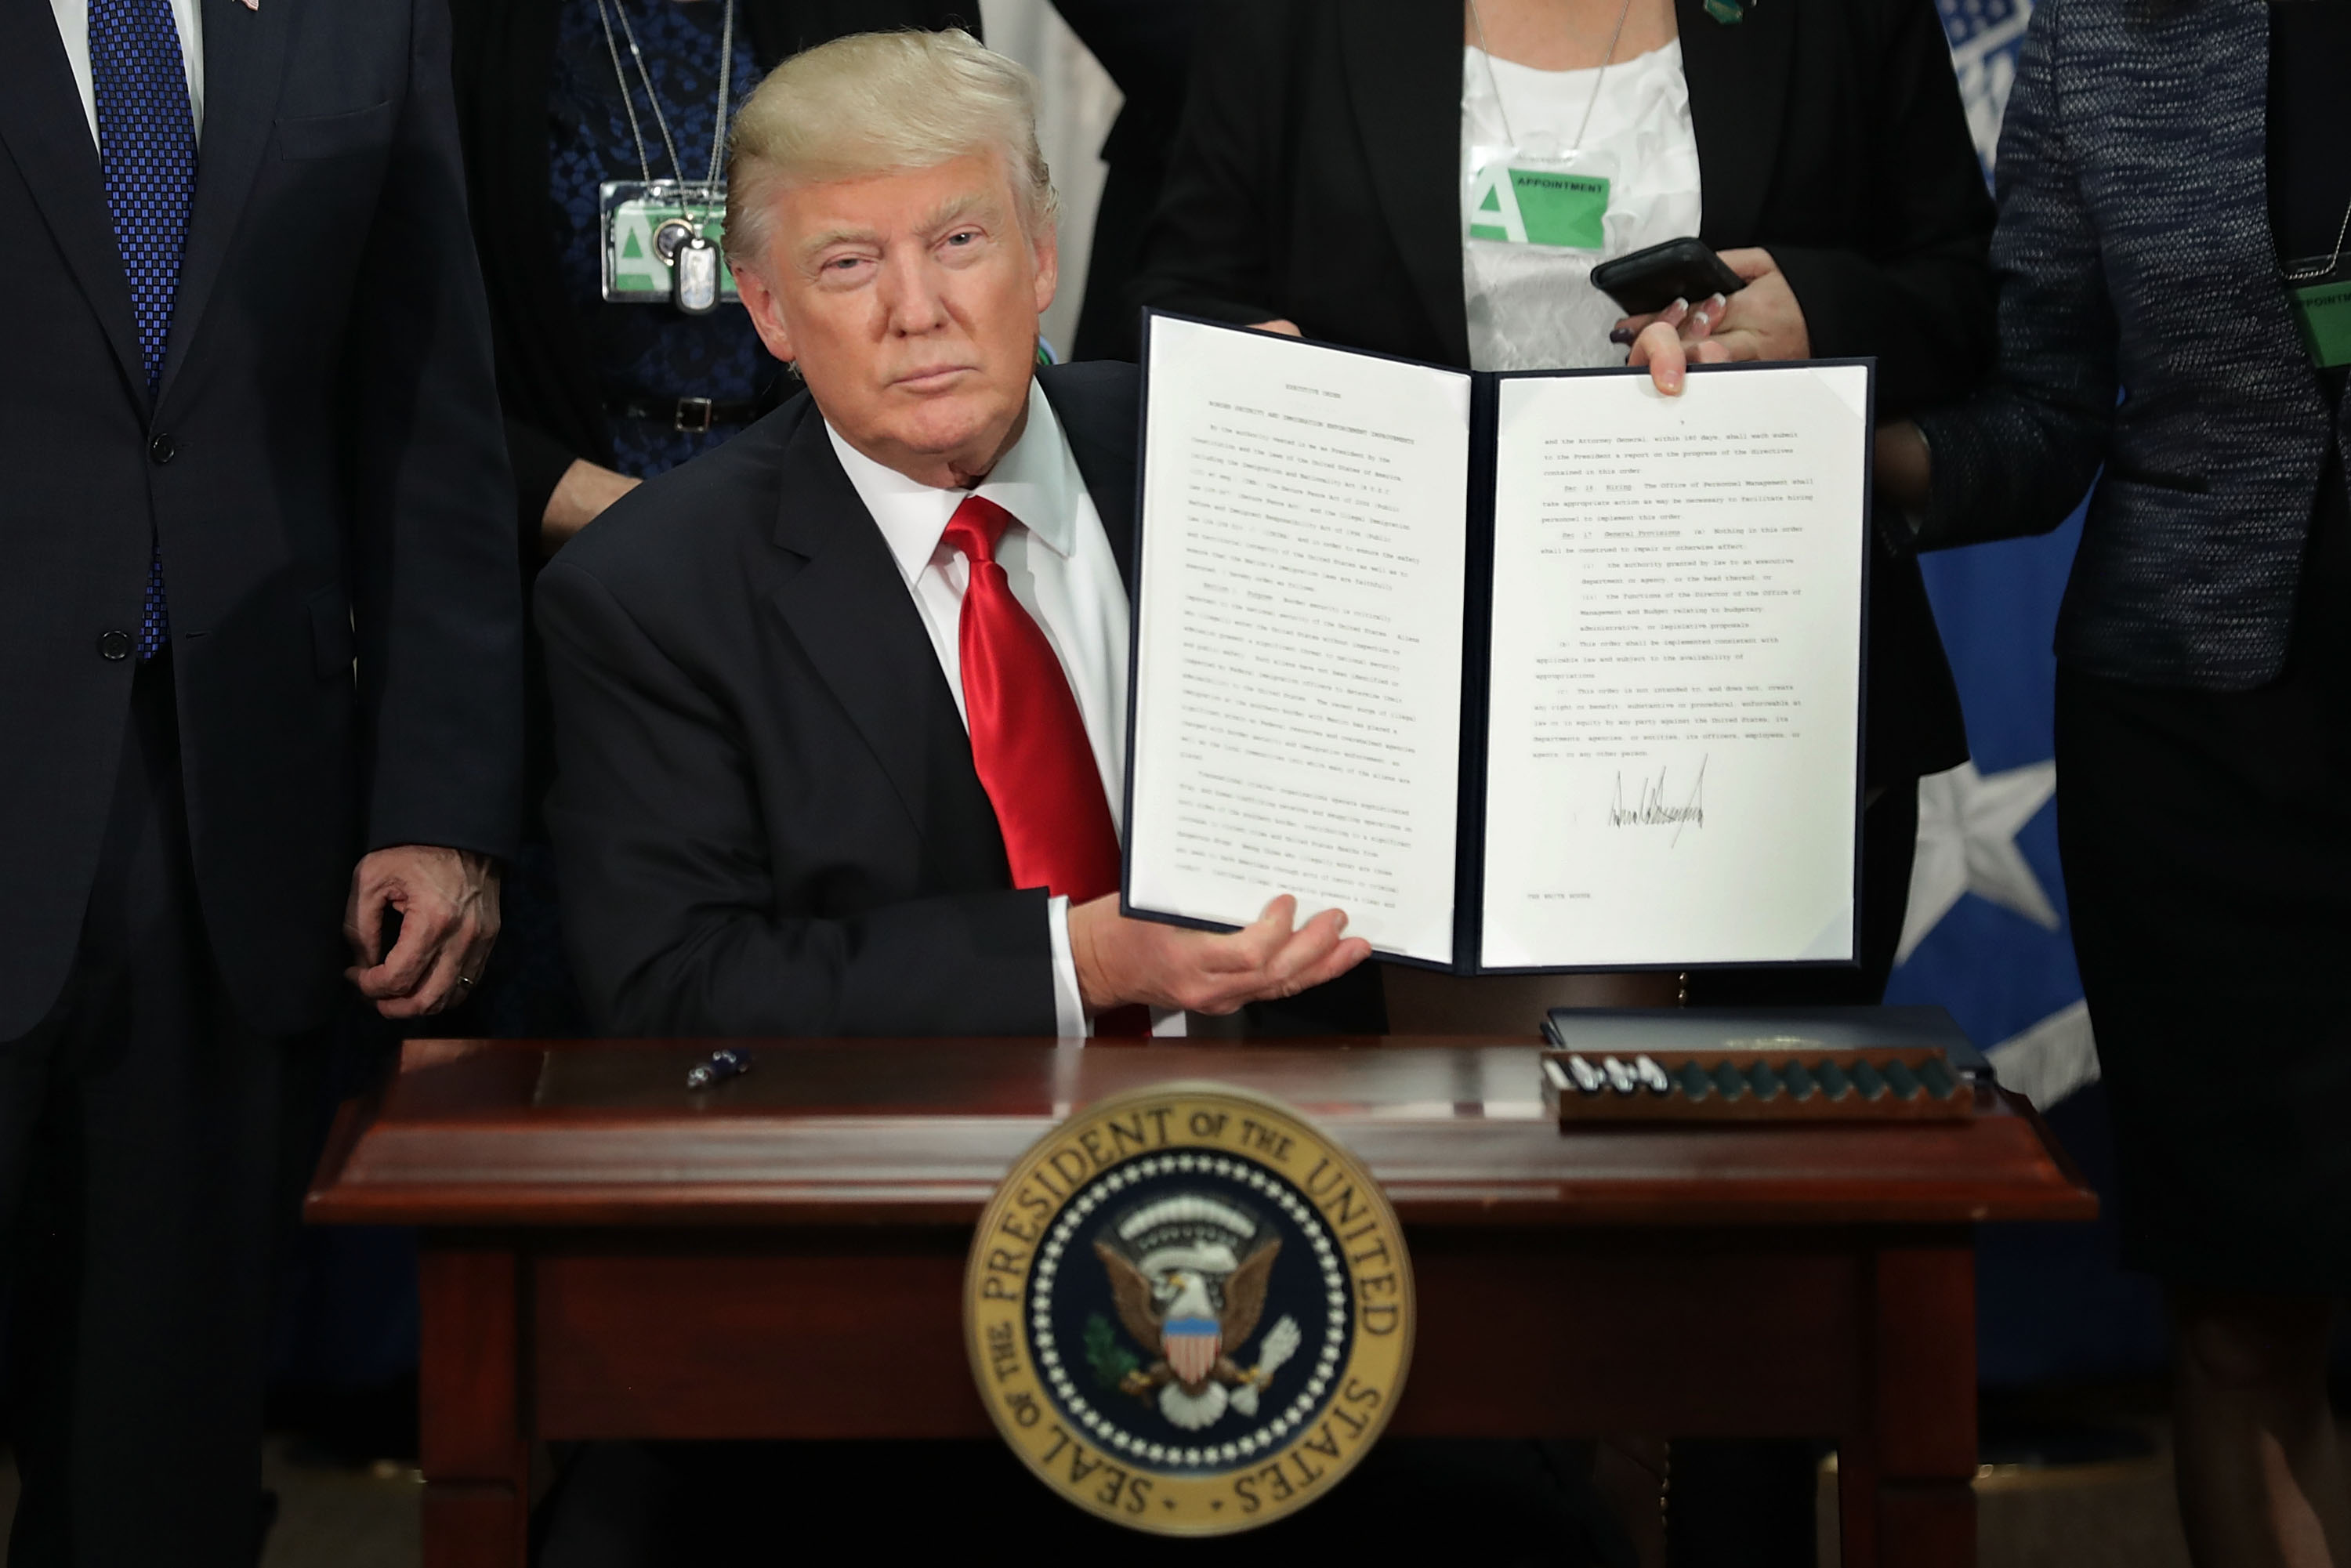 Trump meant what he said, and his new executive orders prove it